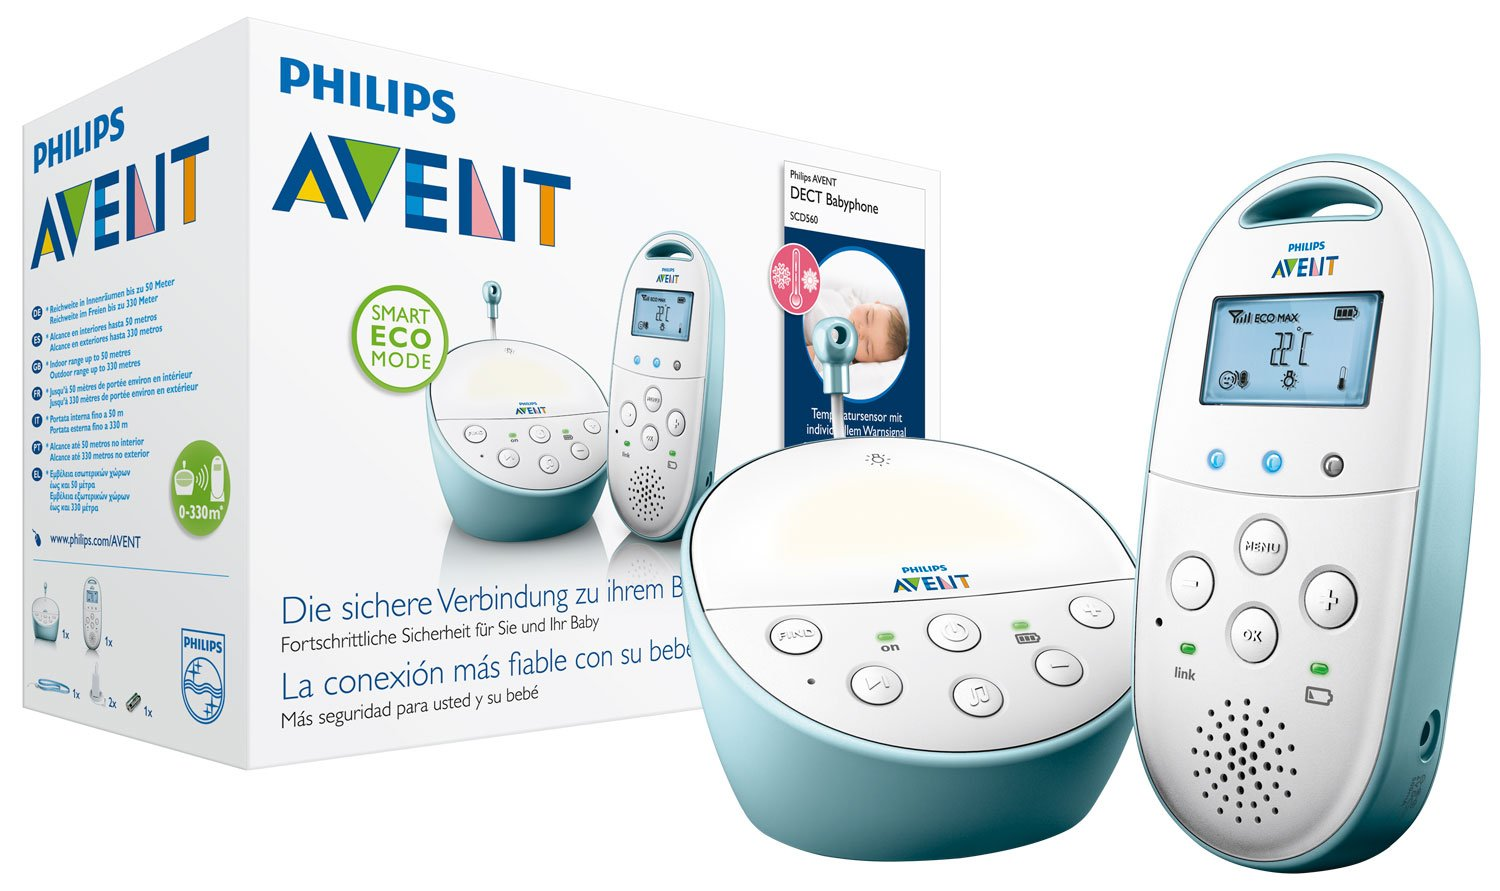 [amazon.de] Philips Avent SCD560 Babyphone za 56,99€ umjesto 89€